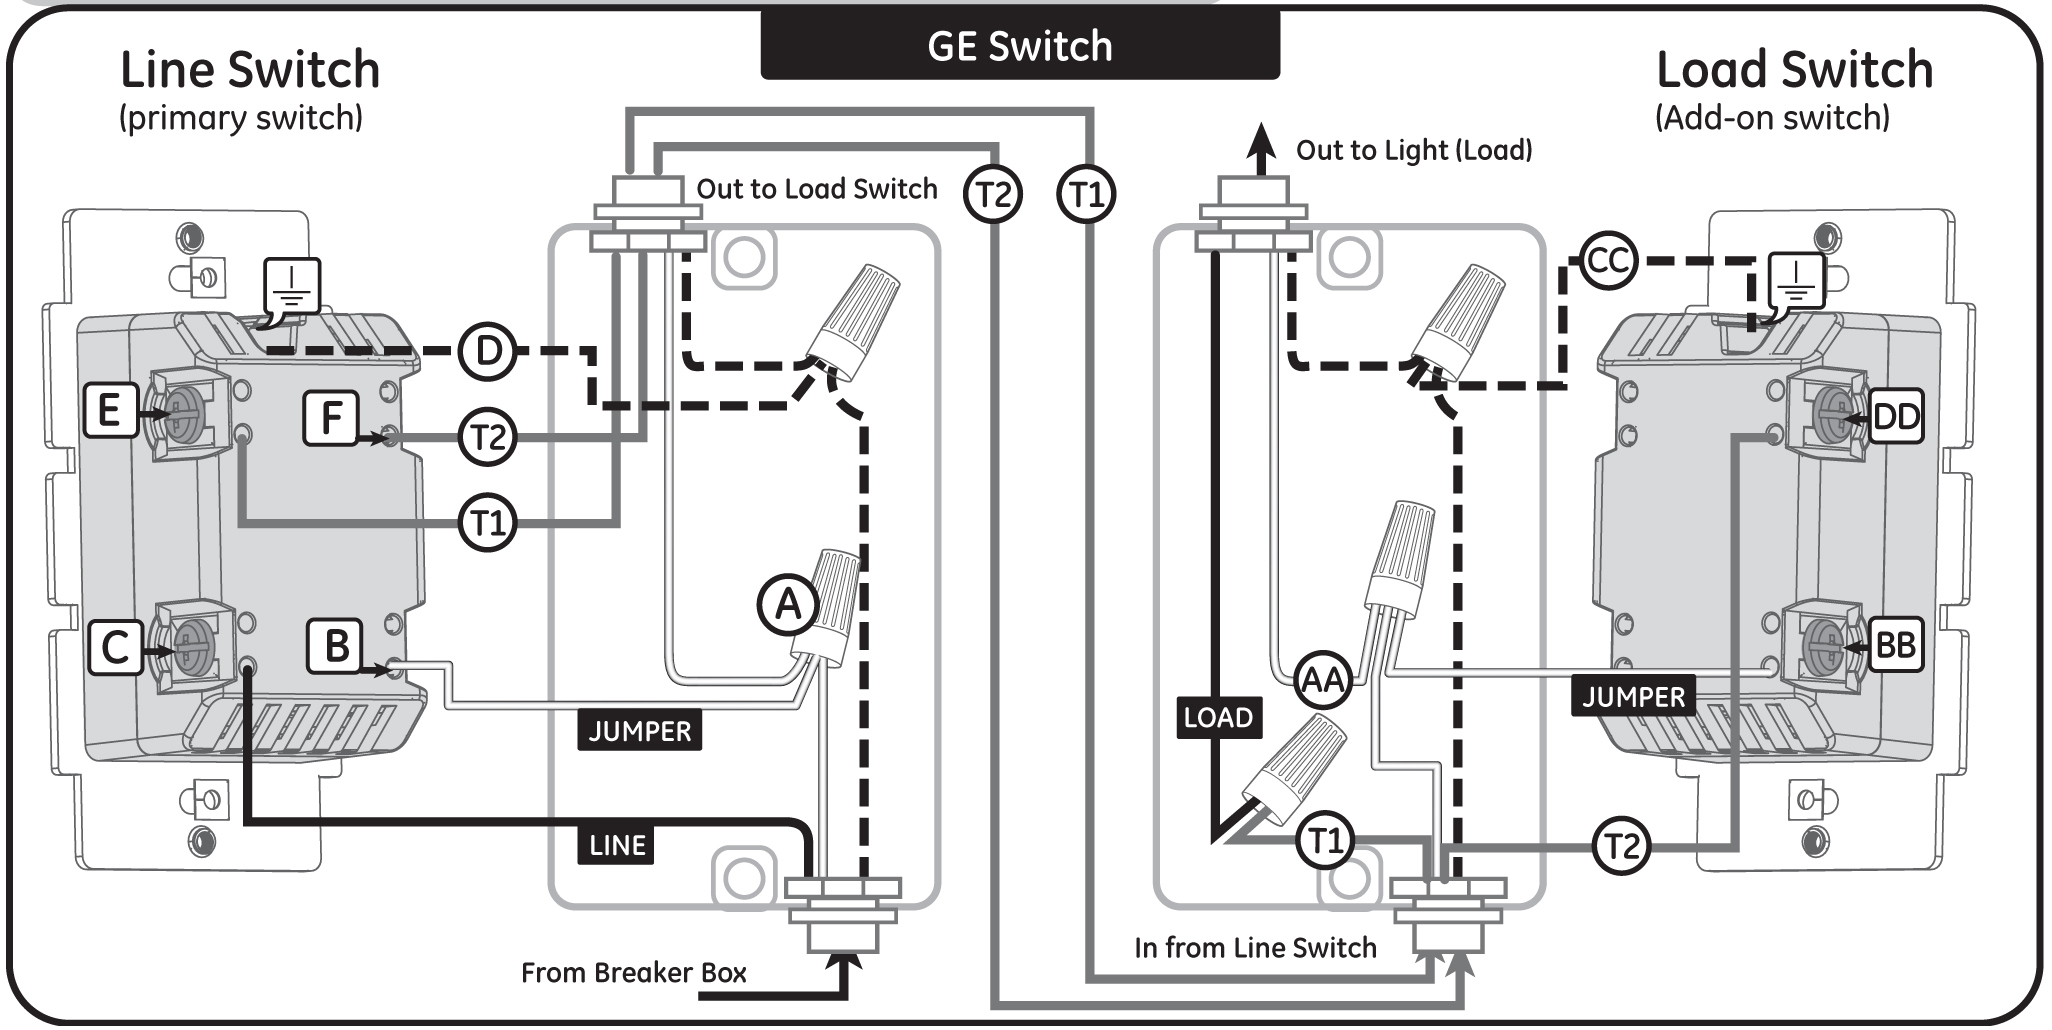 3 Way Dimmer Switches Wiring Diagram